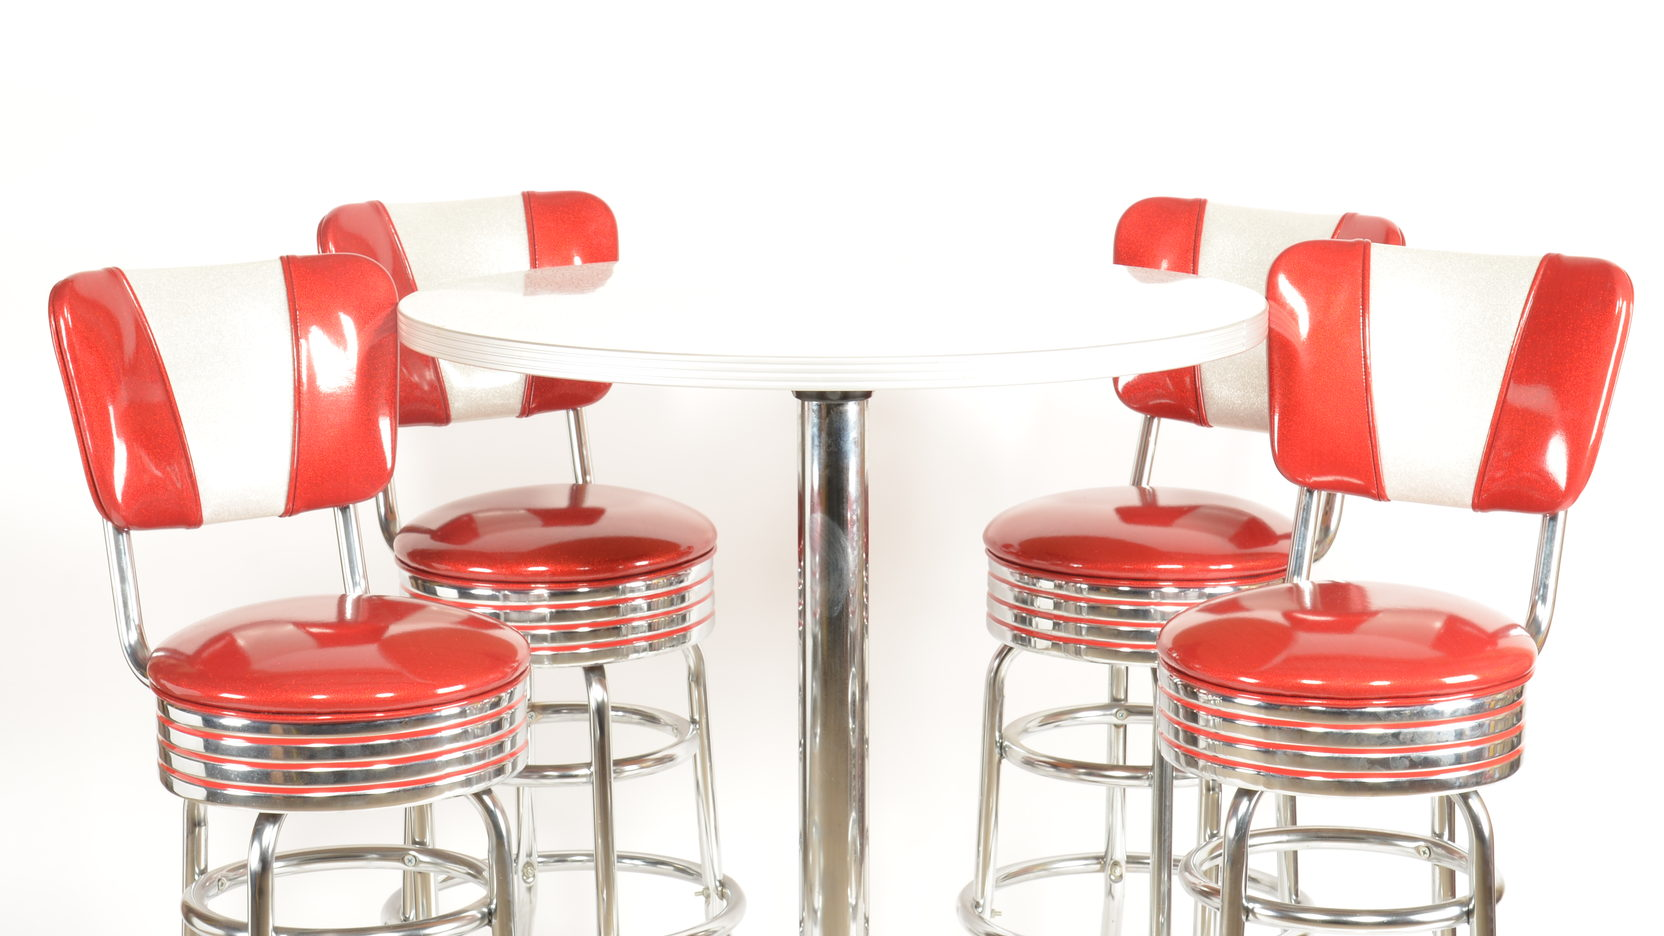 coca cola chairs and tables recliner chair covers australia bar stools table j81 chicago 2016